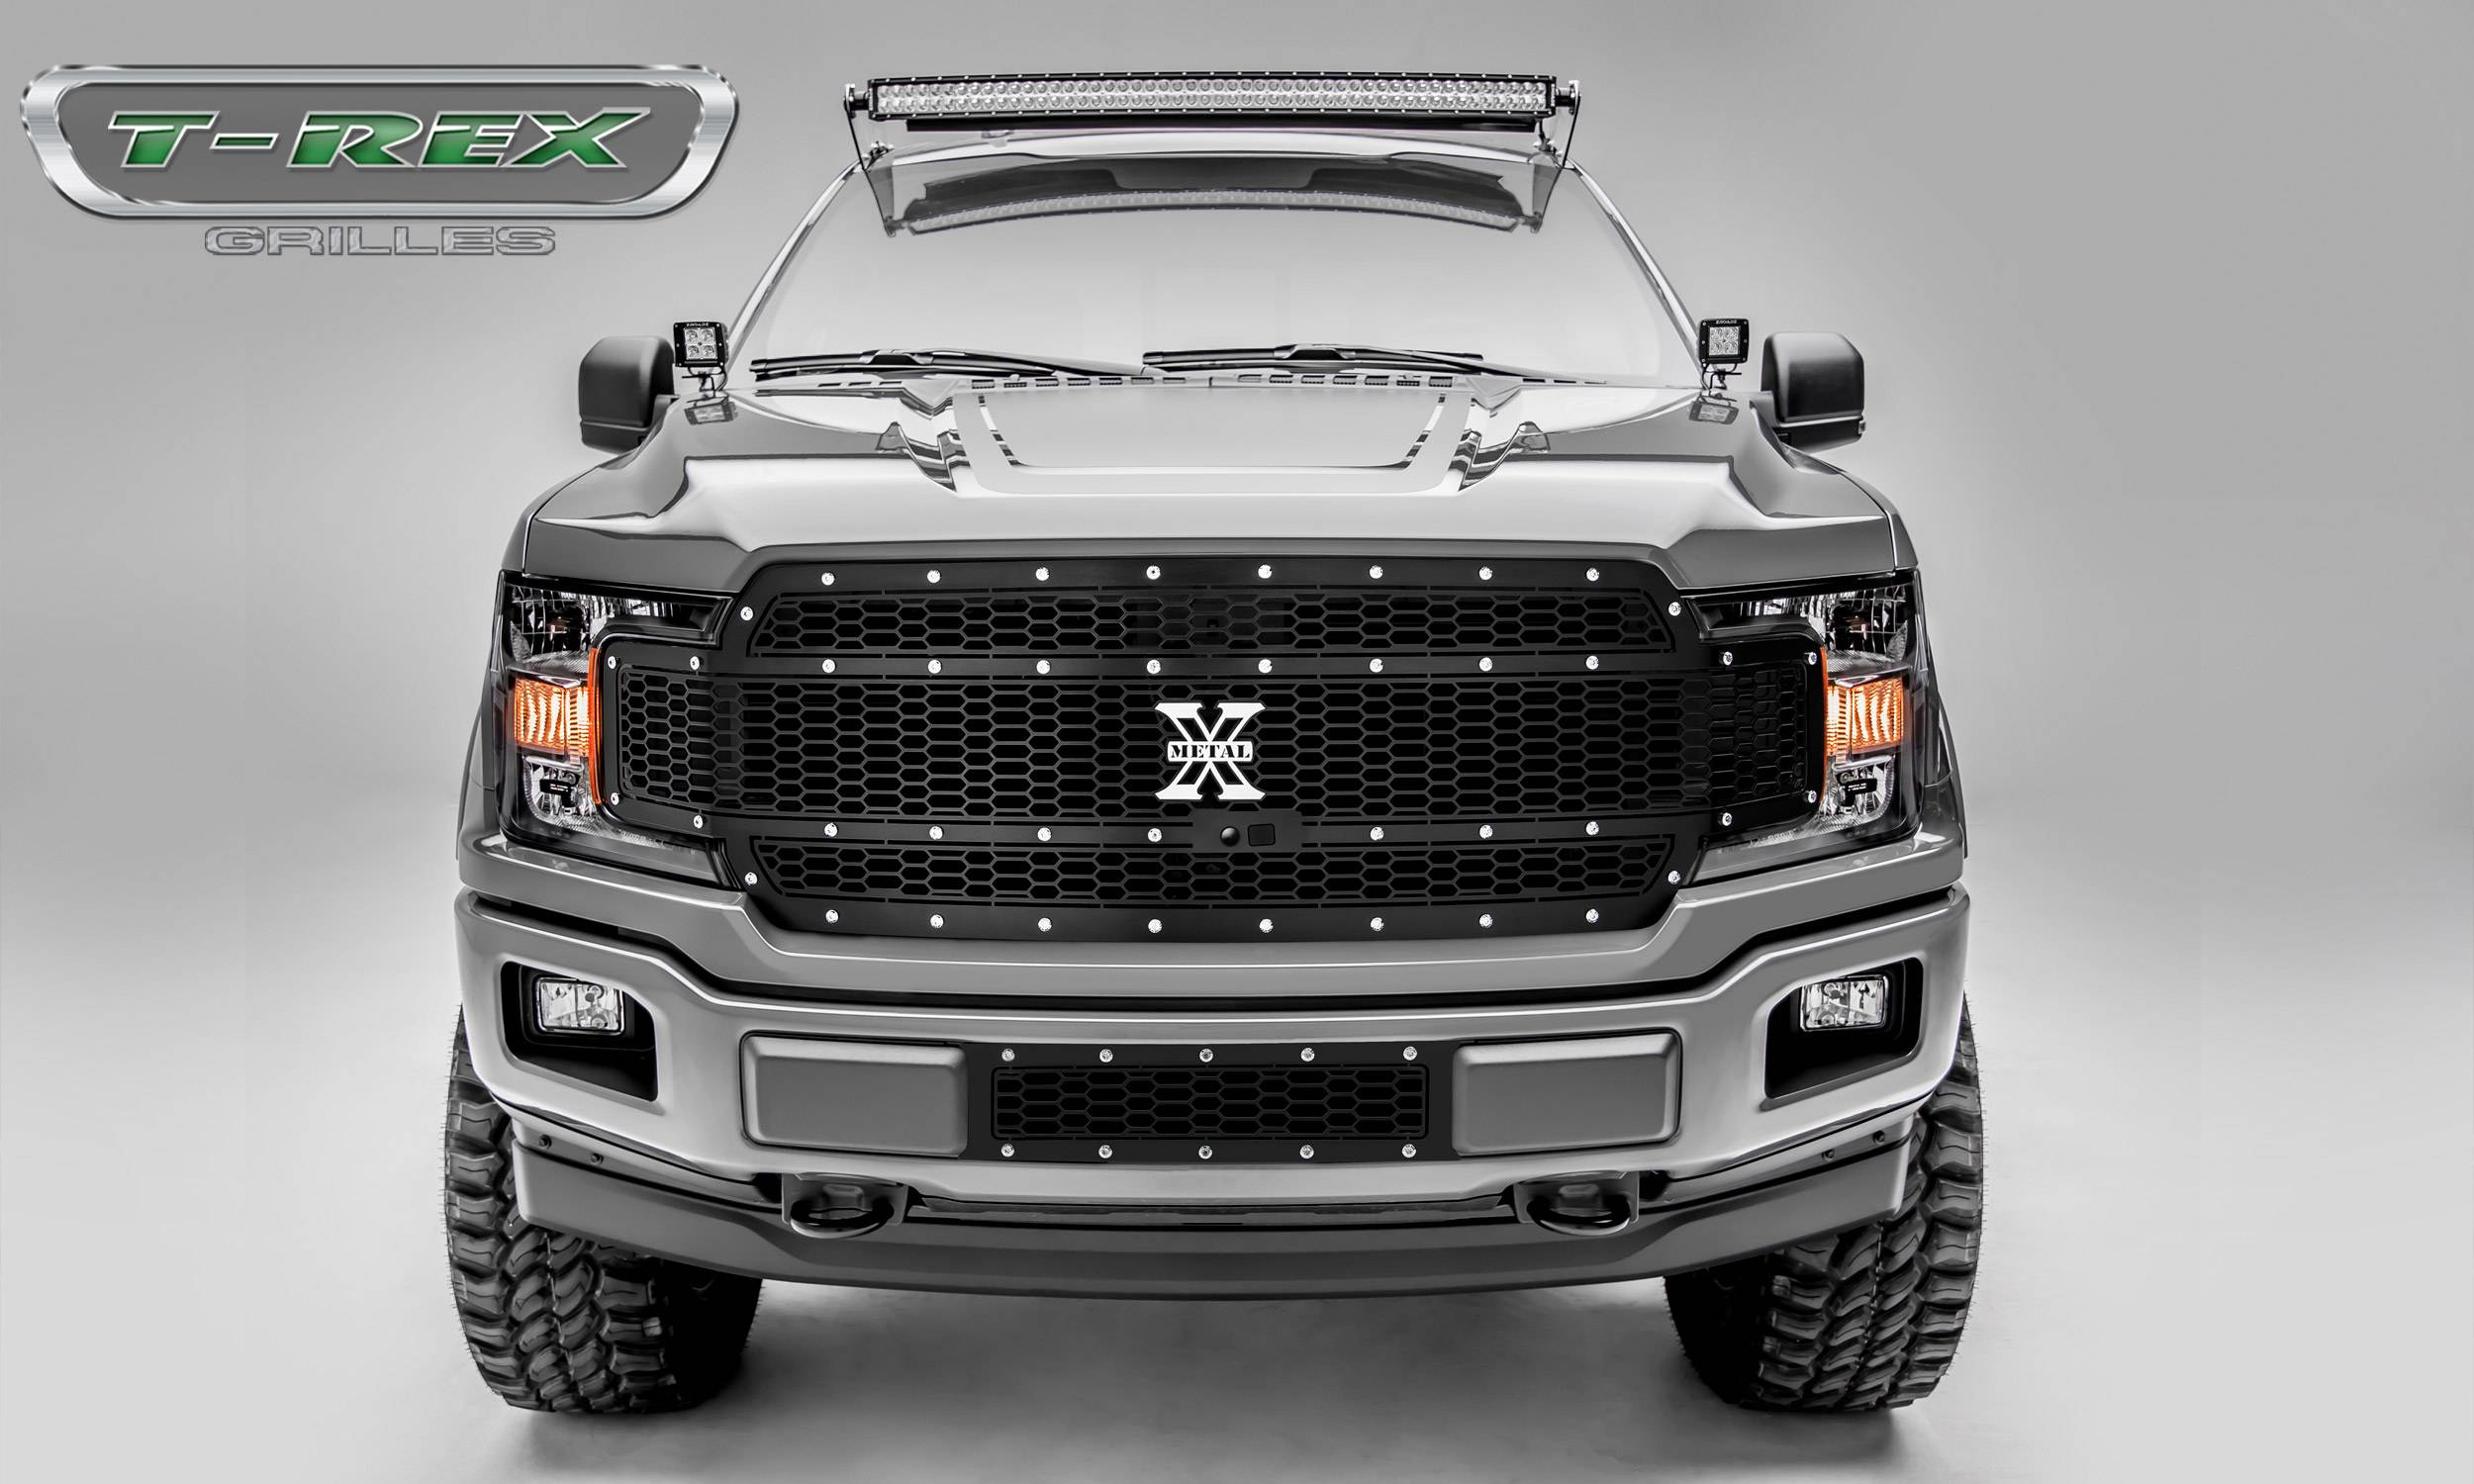 T-REX Grilles - T-REX Ford F-150 - Laser X-Metal Series - Main Grille Replacement - Fits Vehicles w/ FFC - Laser Cut Steel Pattern - Chrome Studs with Black Powdercoat Finish - Pt # 7715891